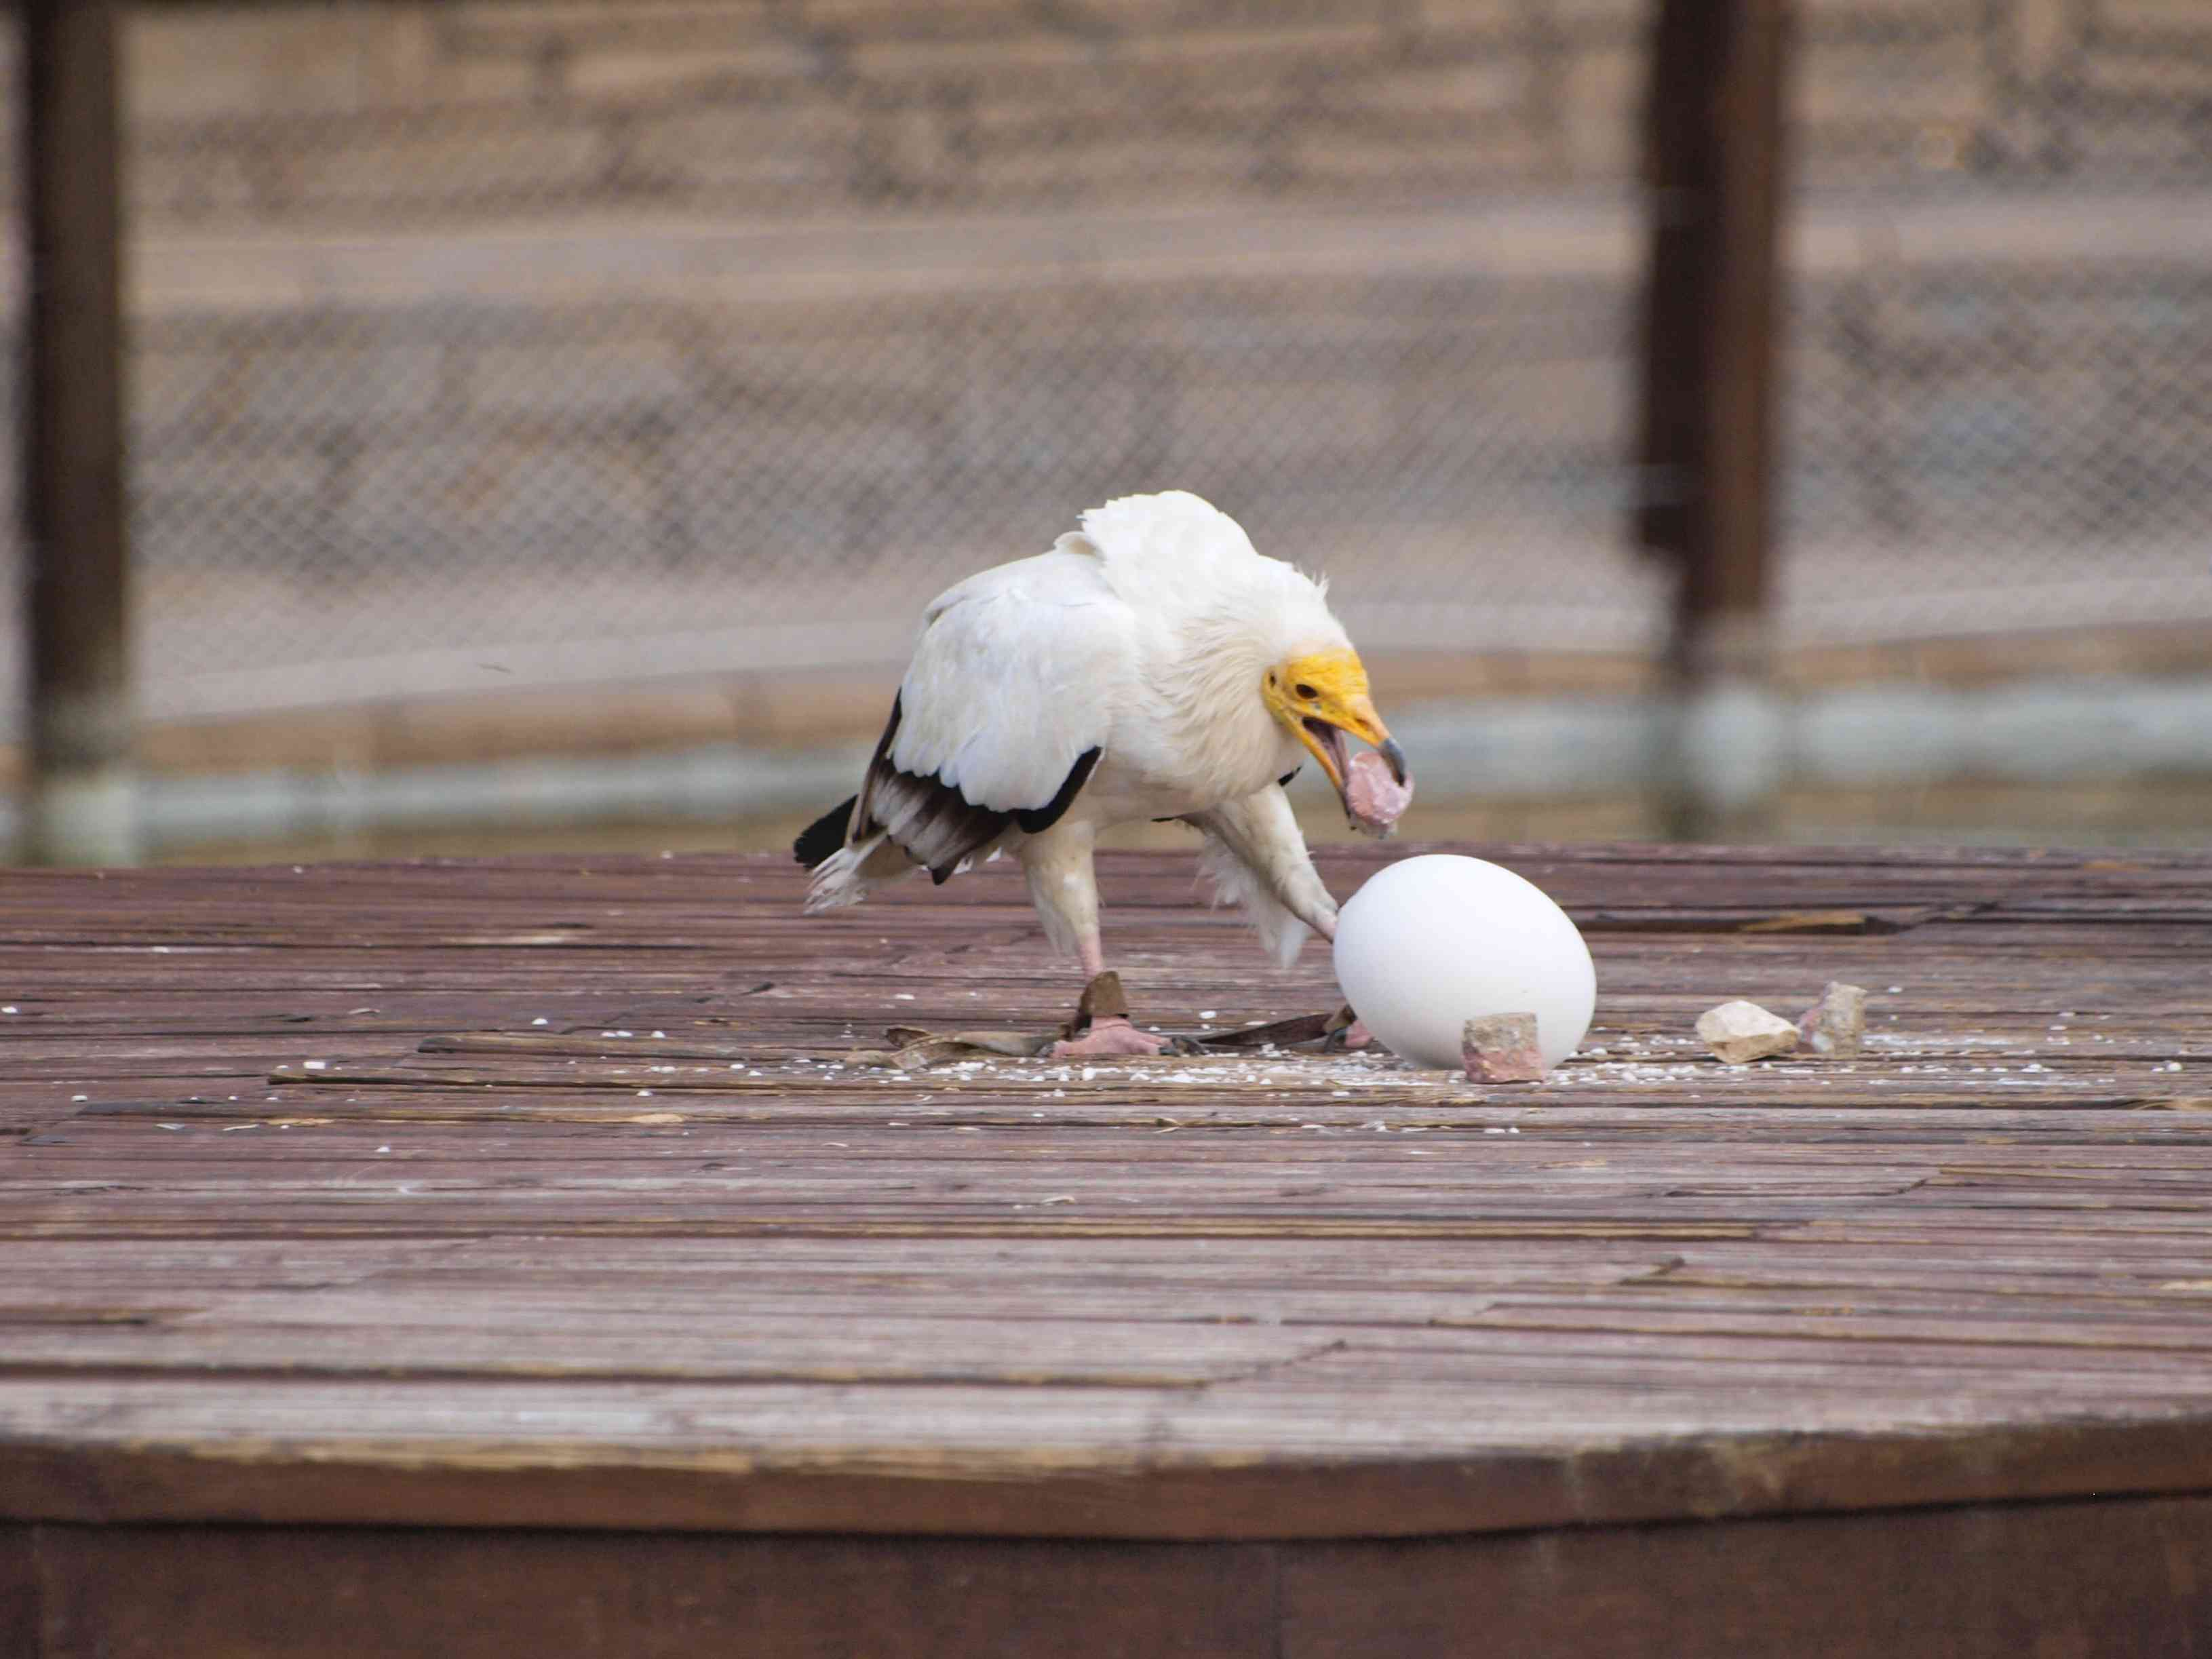 Egyptian Vulture breaking egg with a stone